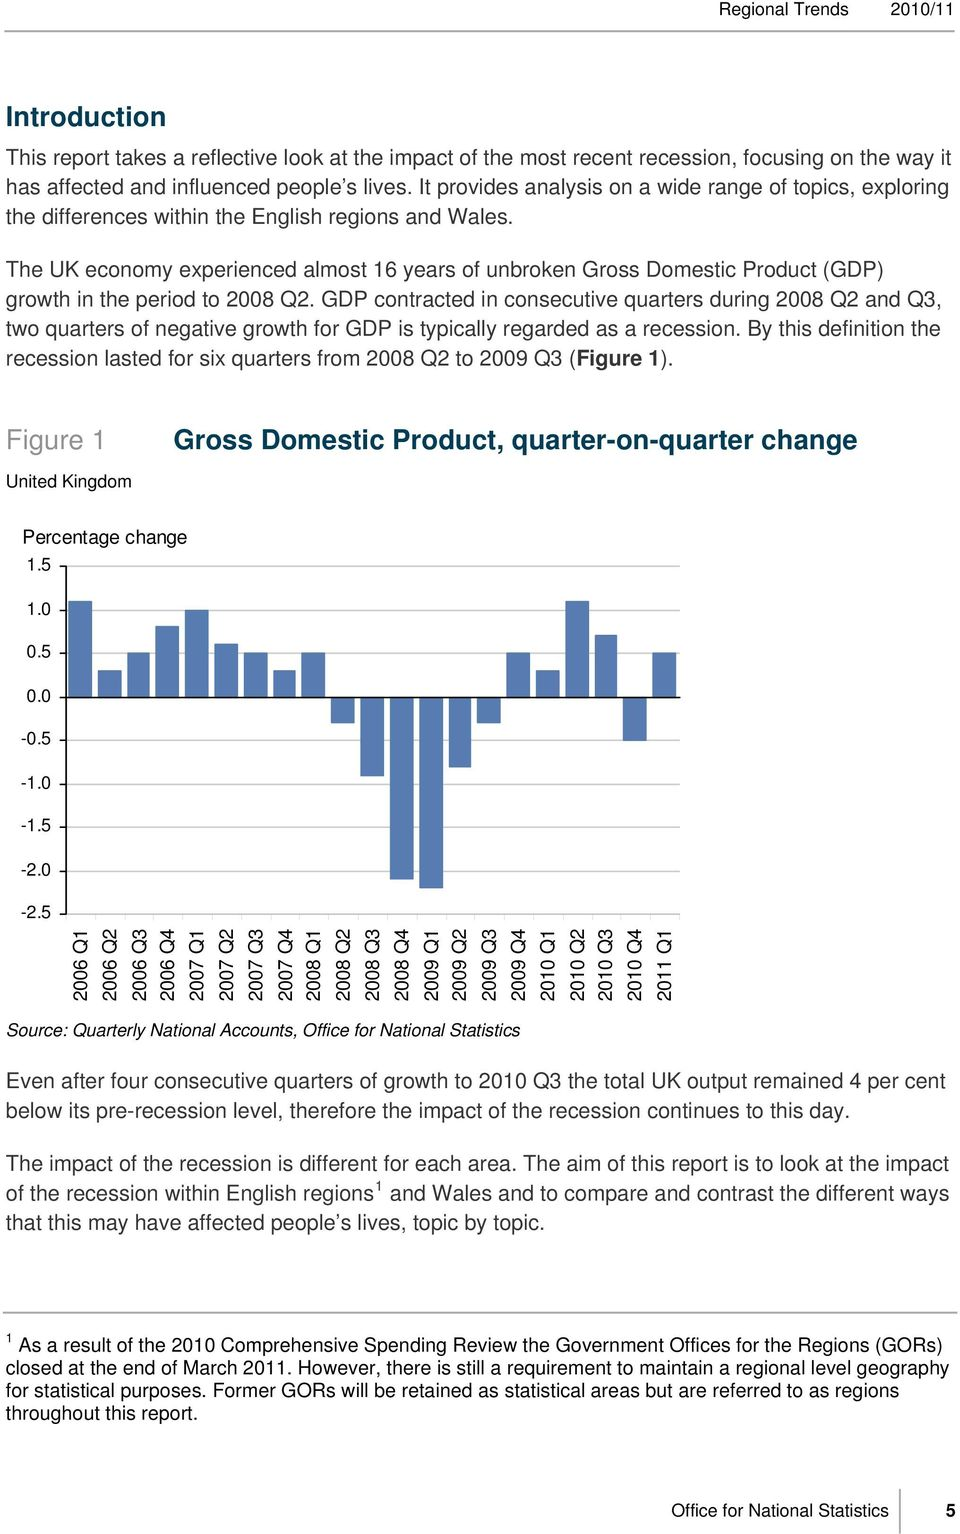 The UK economy experienced almost 16 years of unbroken Gross Domestic Product (GDP) growth in the period to 28 Q2.